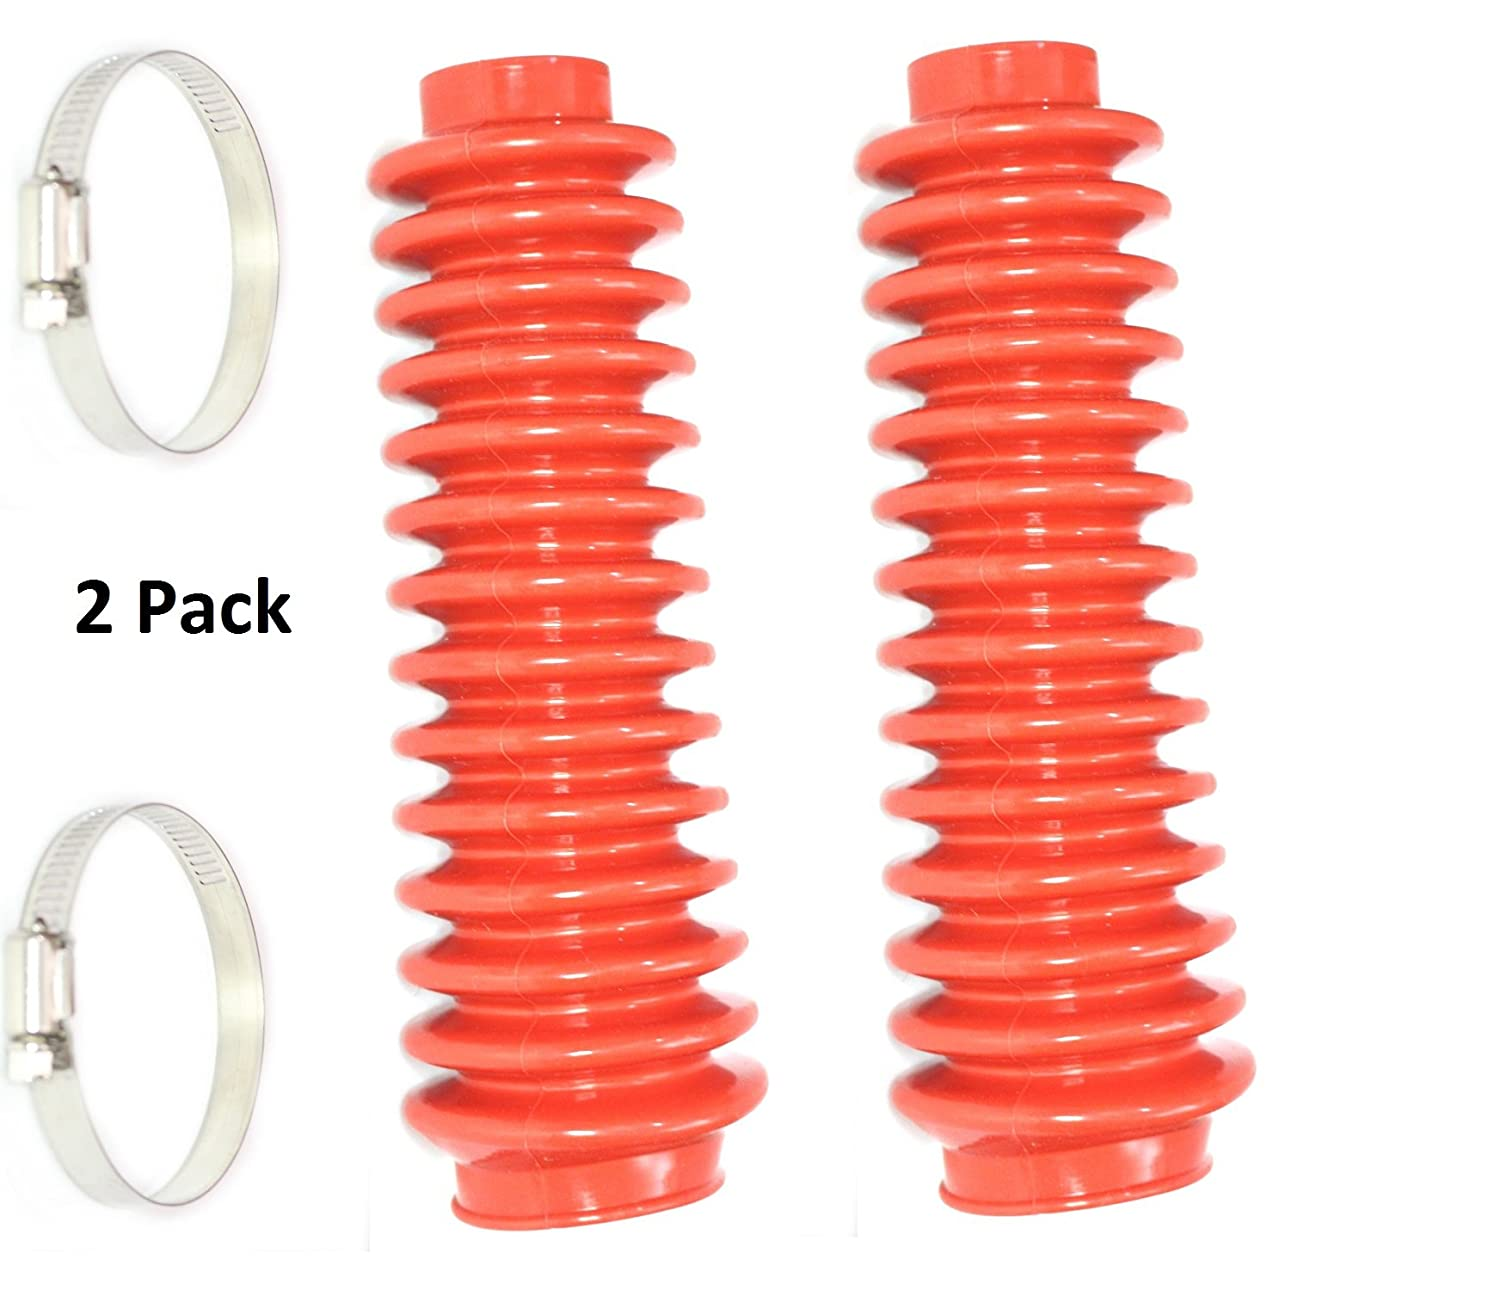 Shock Rough Boot Lifted 4x4 ORV Country Absorber Red